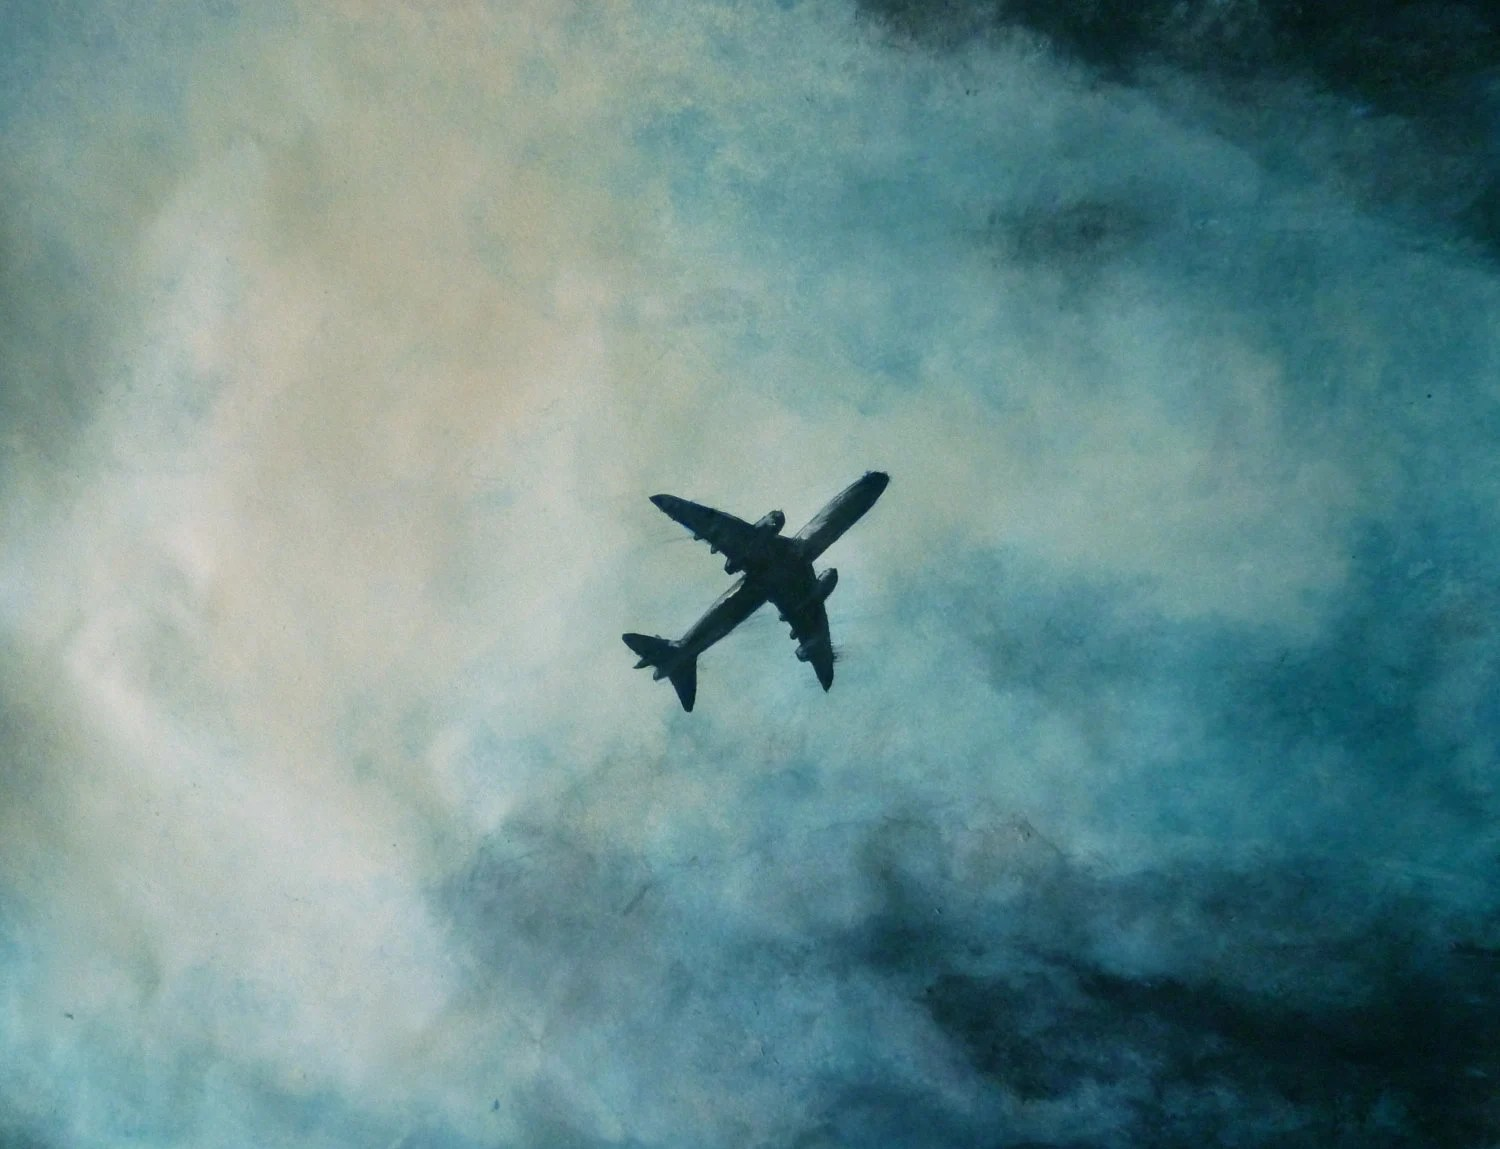 Airplane ART PRINT Limited Edition by AF. Marlow